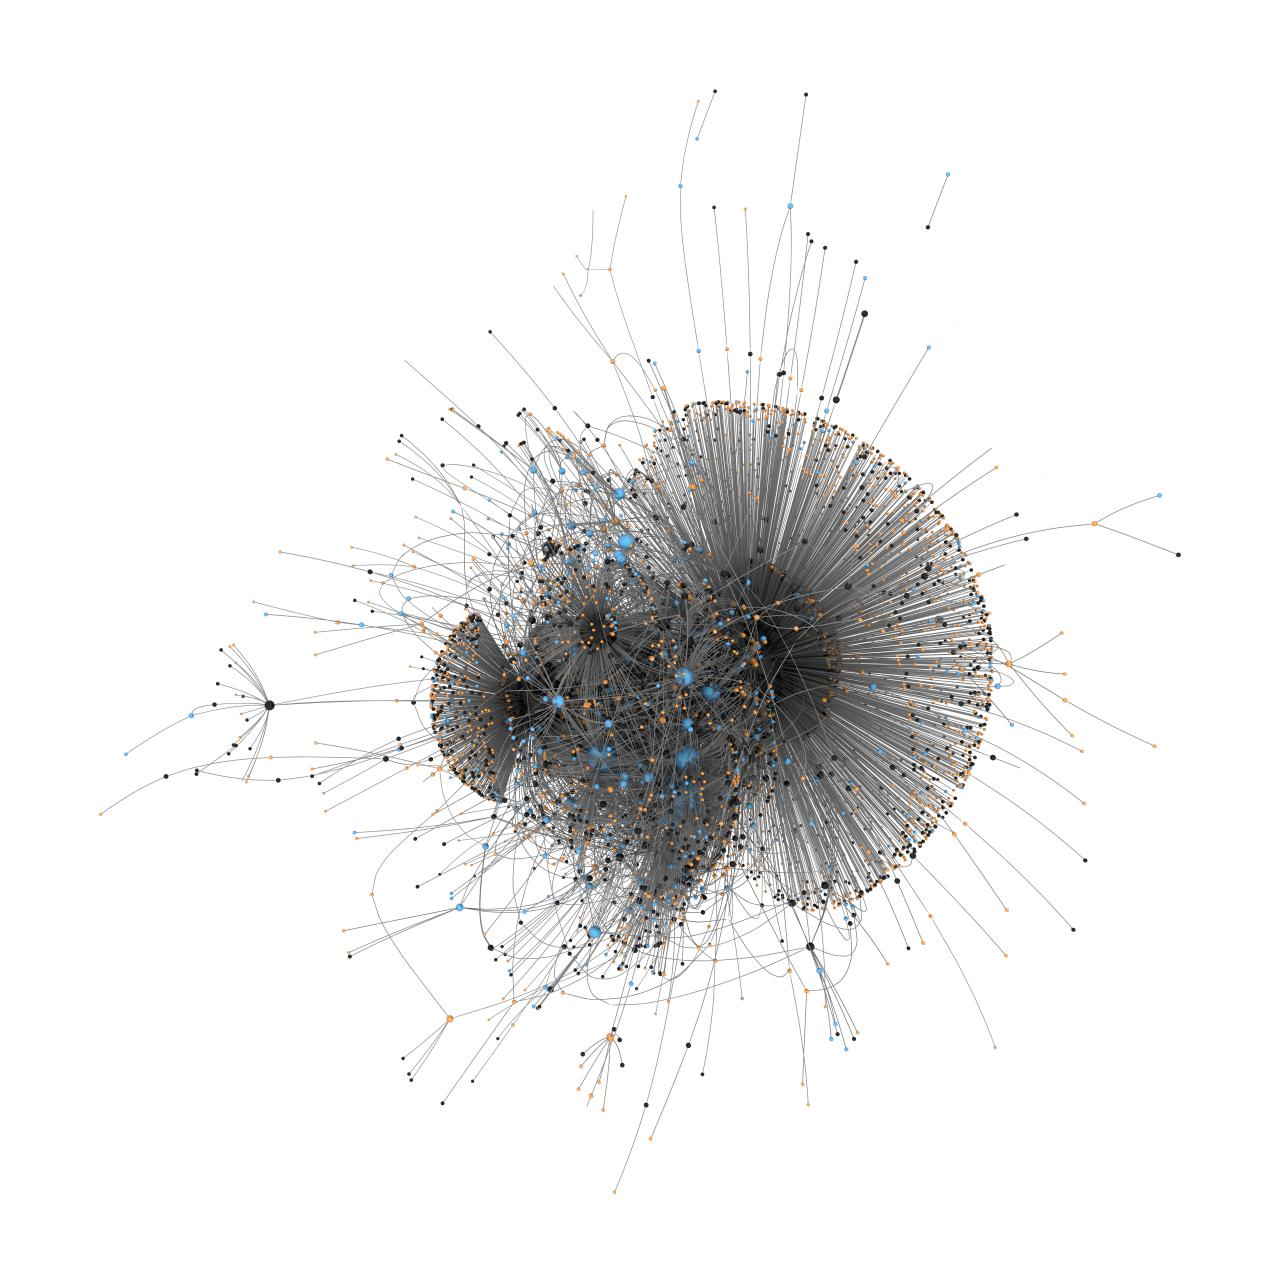 You can see a network that has a similar shape to a jellyfish, with black lines connecting black, orange and blue dots.